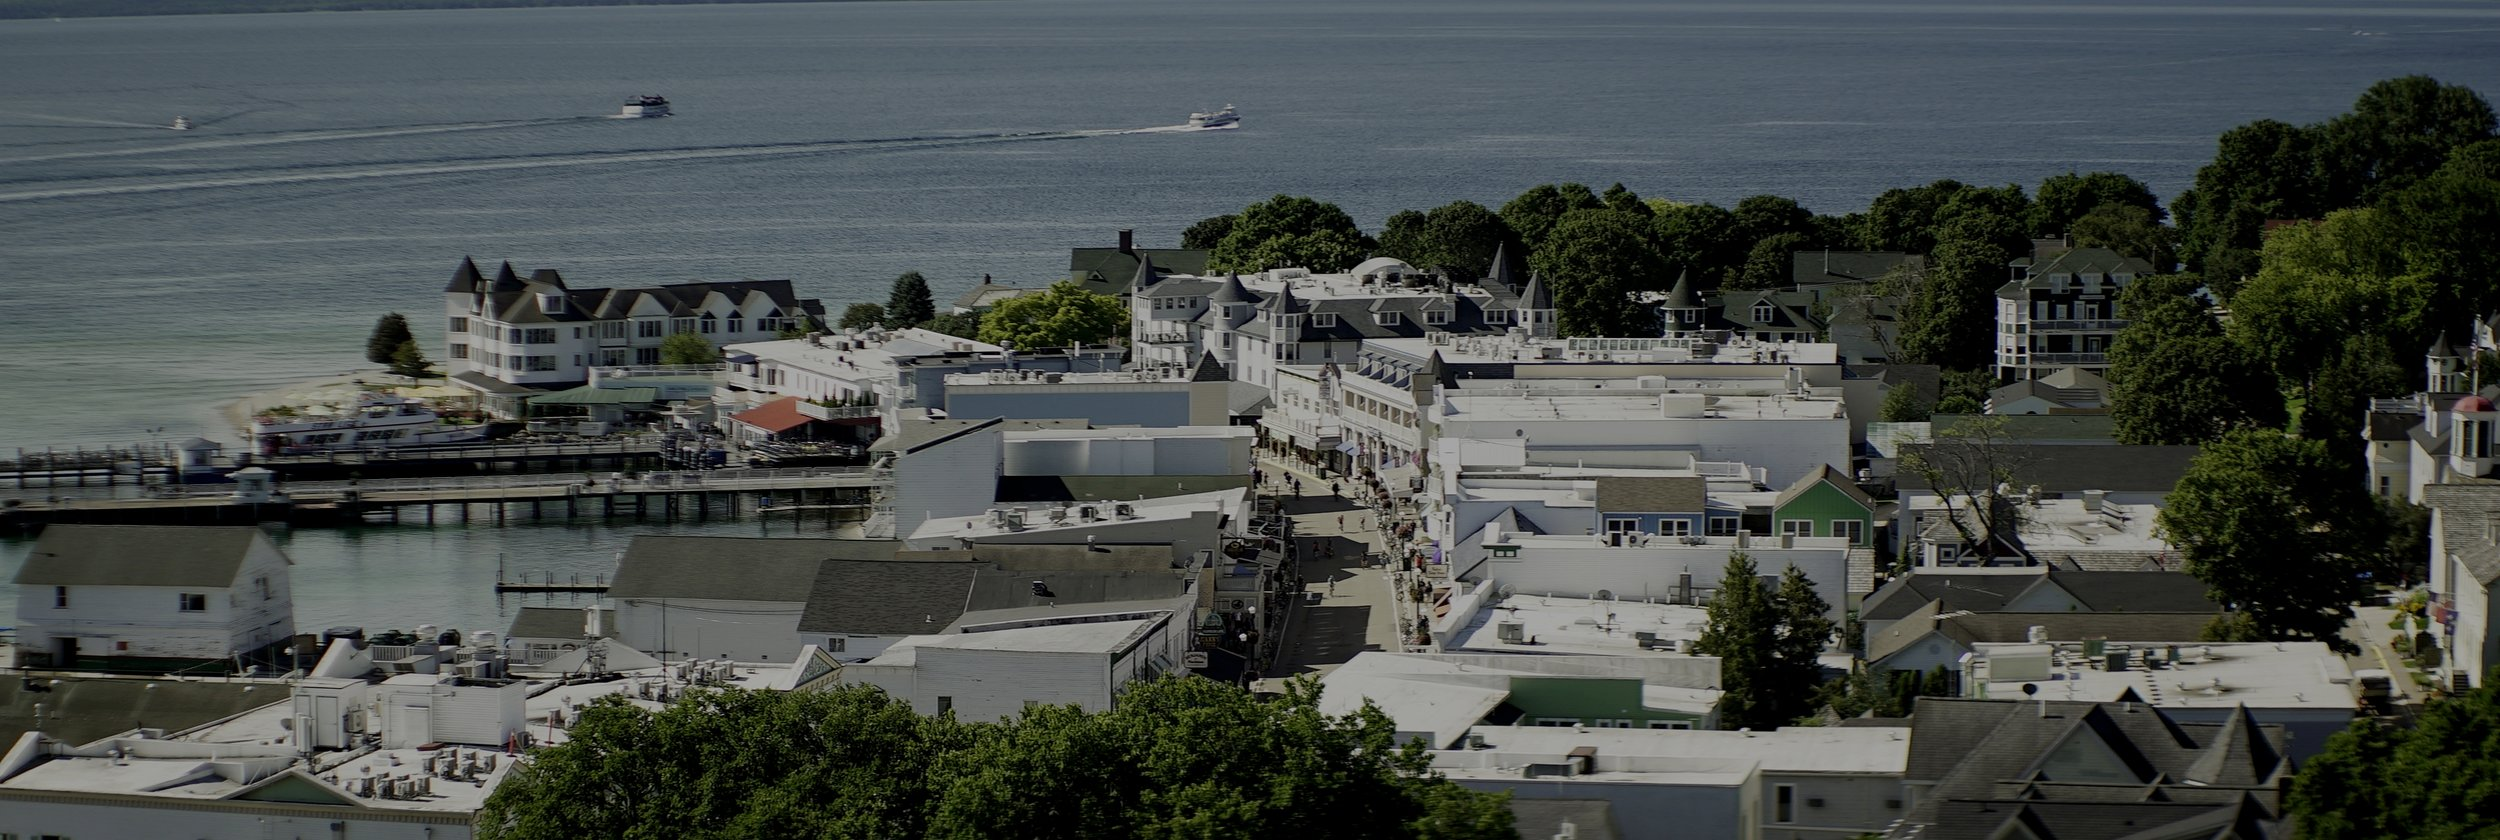 Mackinac_Downtown_From_Fort_1.JPG